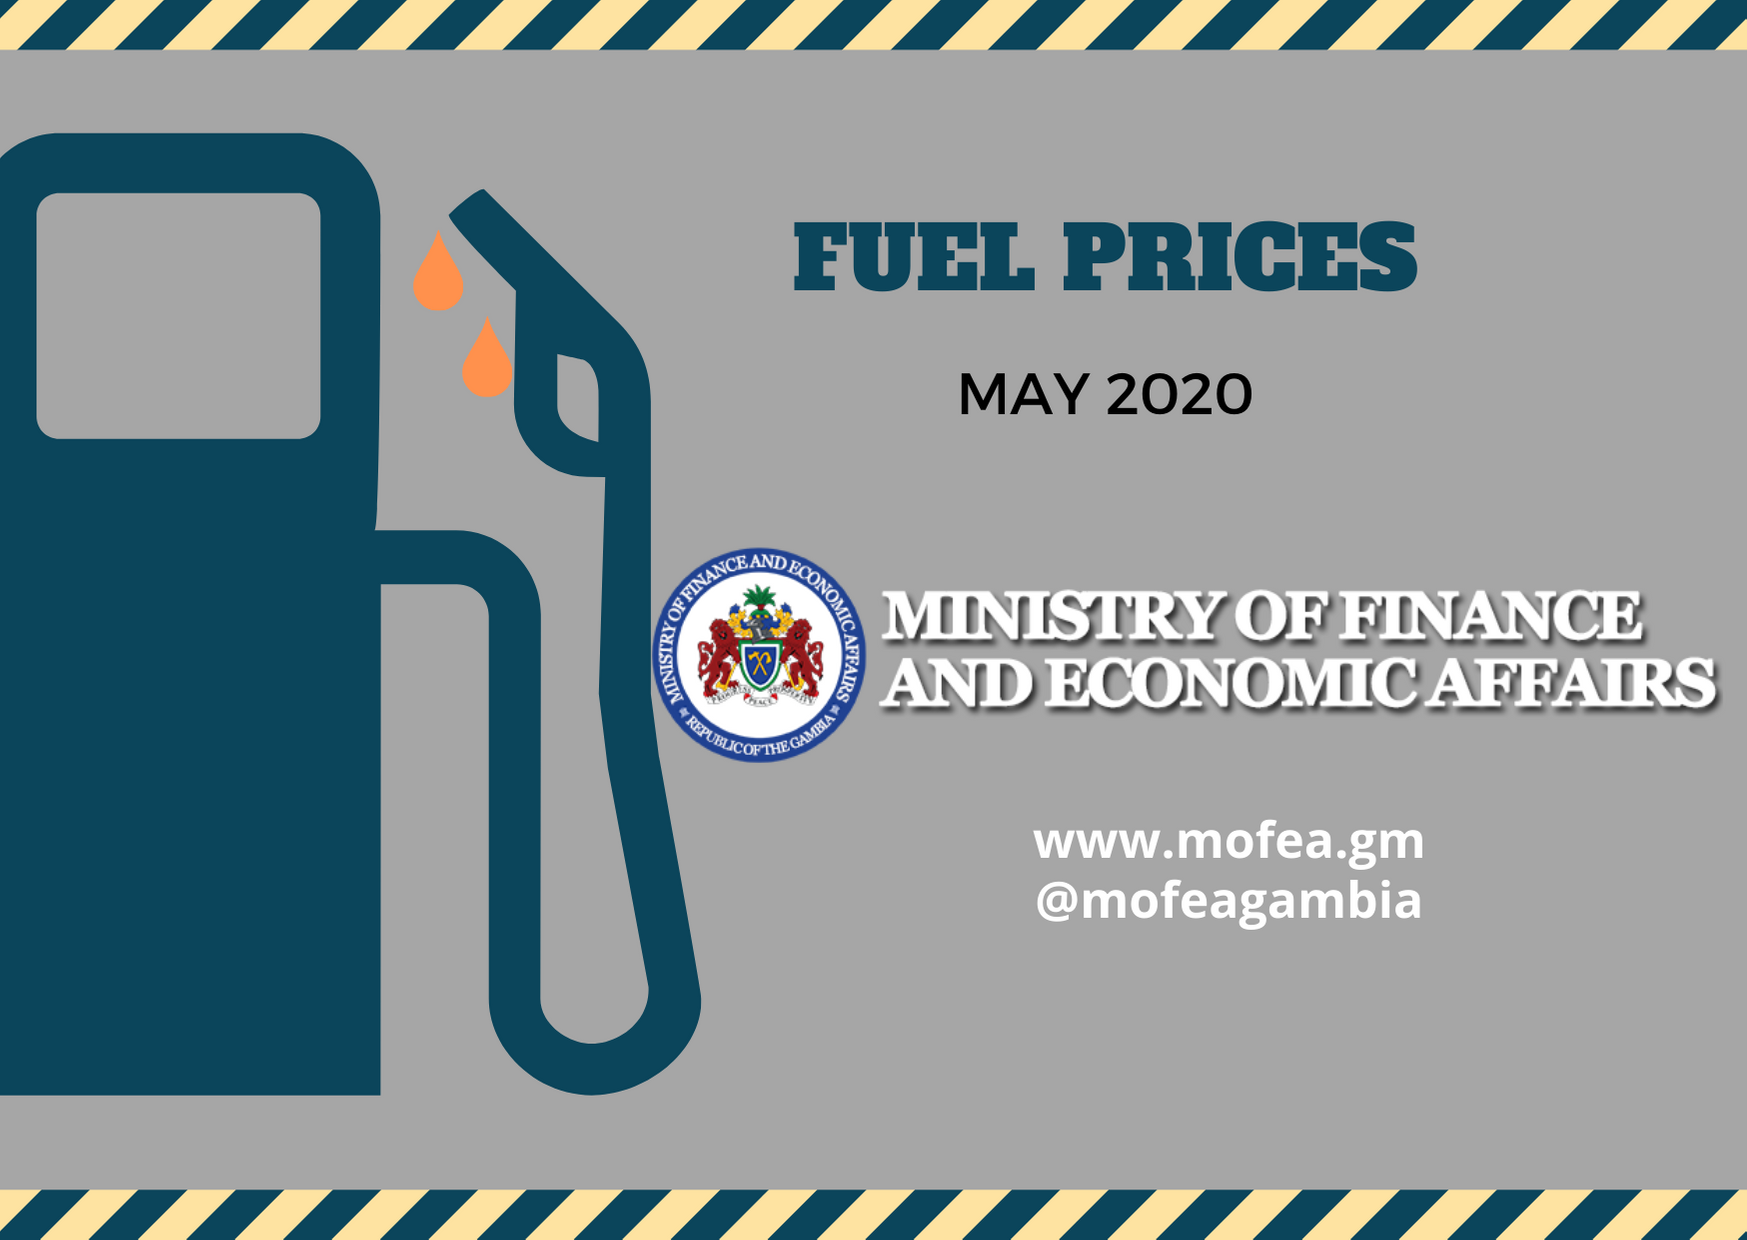 Fuel Prices as of May 2020